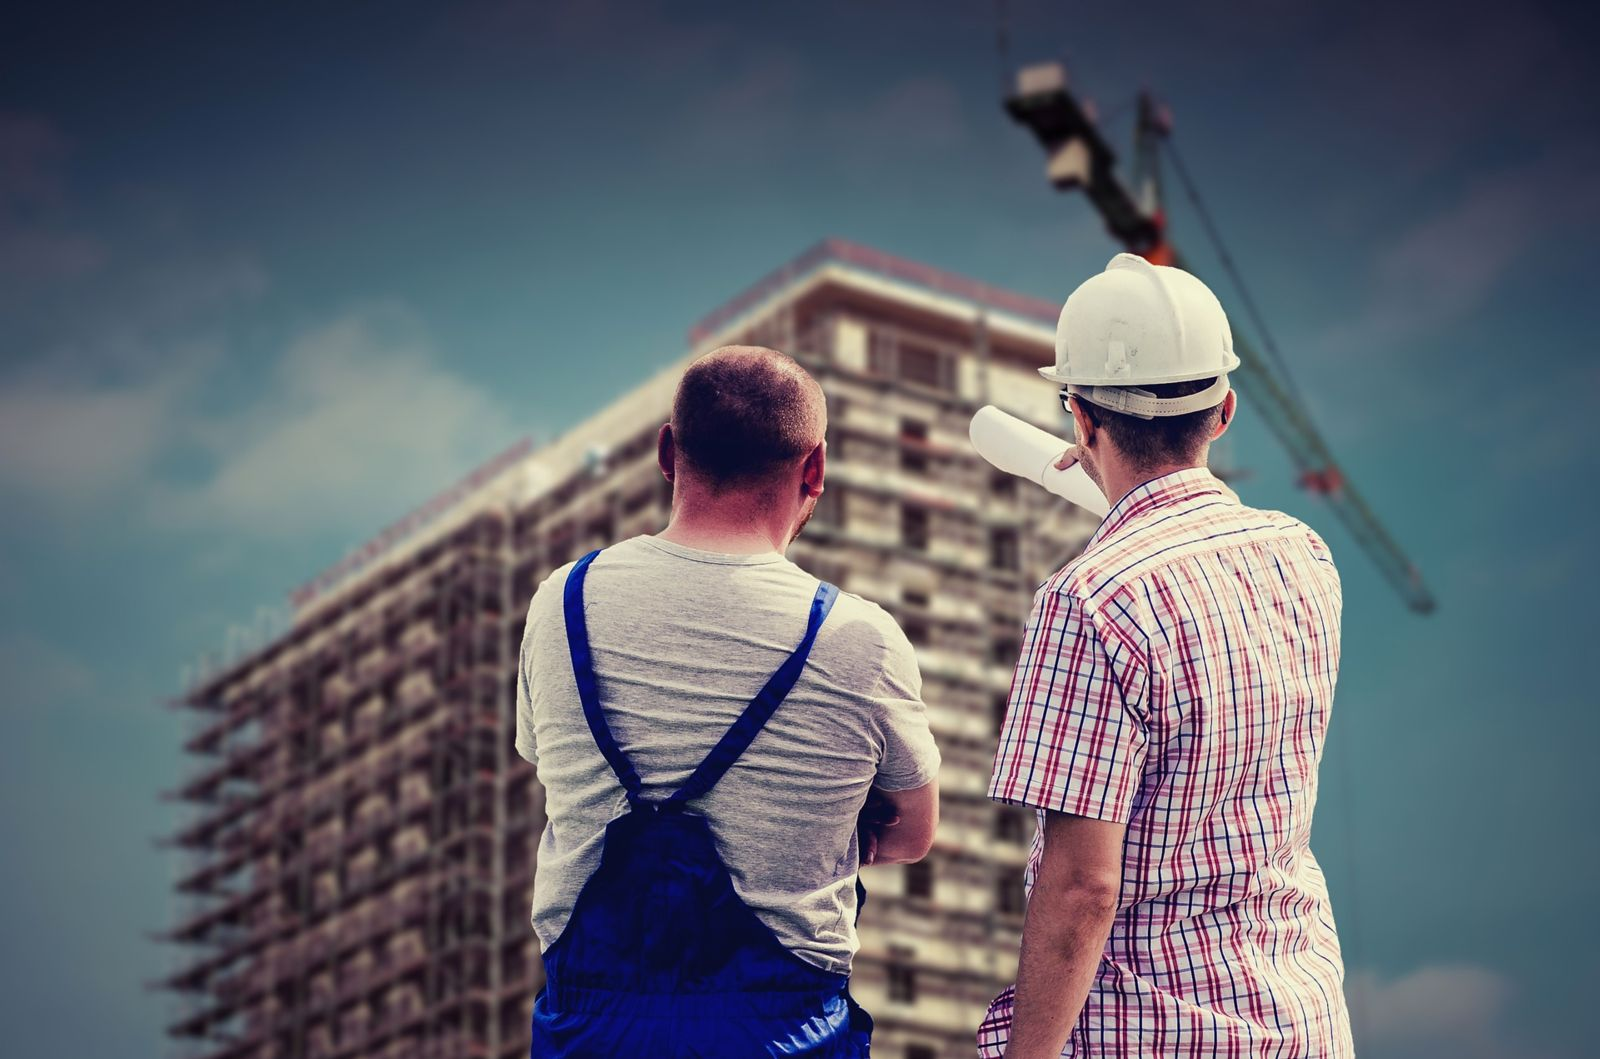 Construction workers overseeing building being built by crane in background